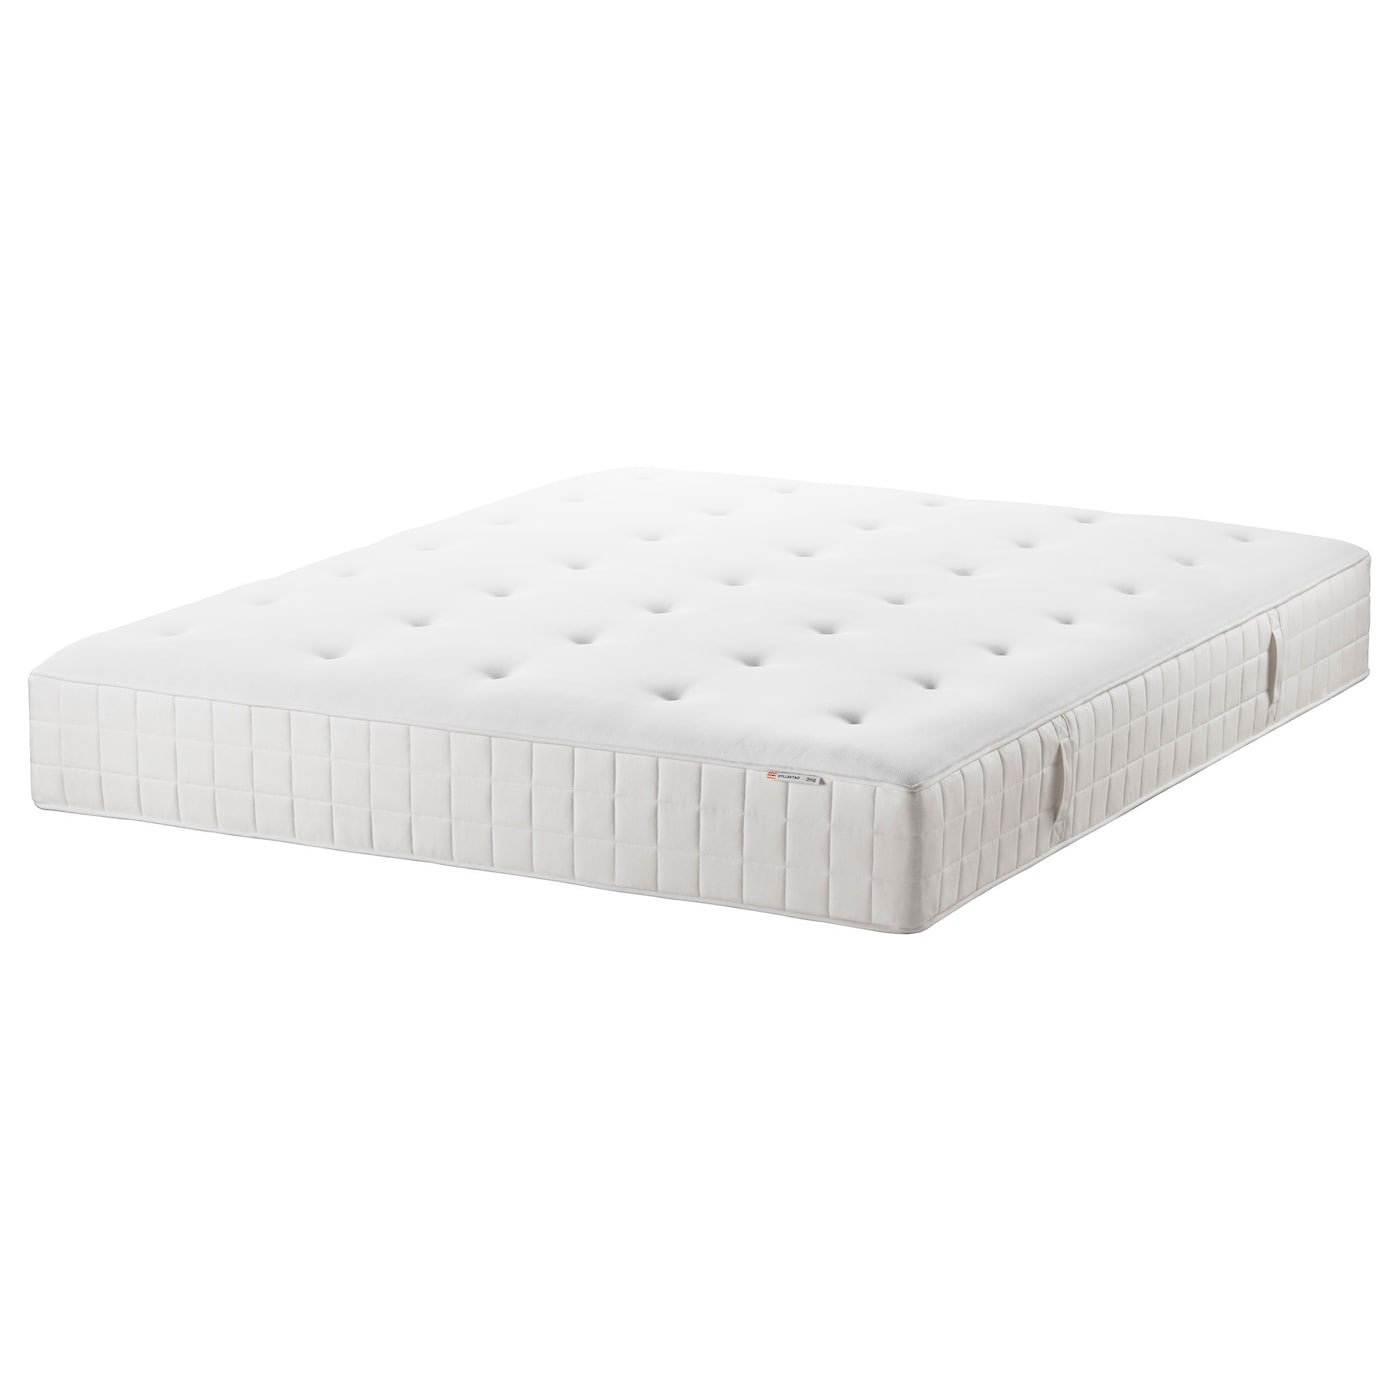 innovations shiloh sleep foam mattresses under mattress best memory queen mattressopedia inch